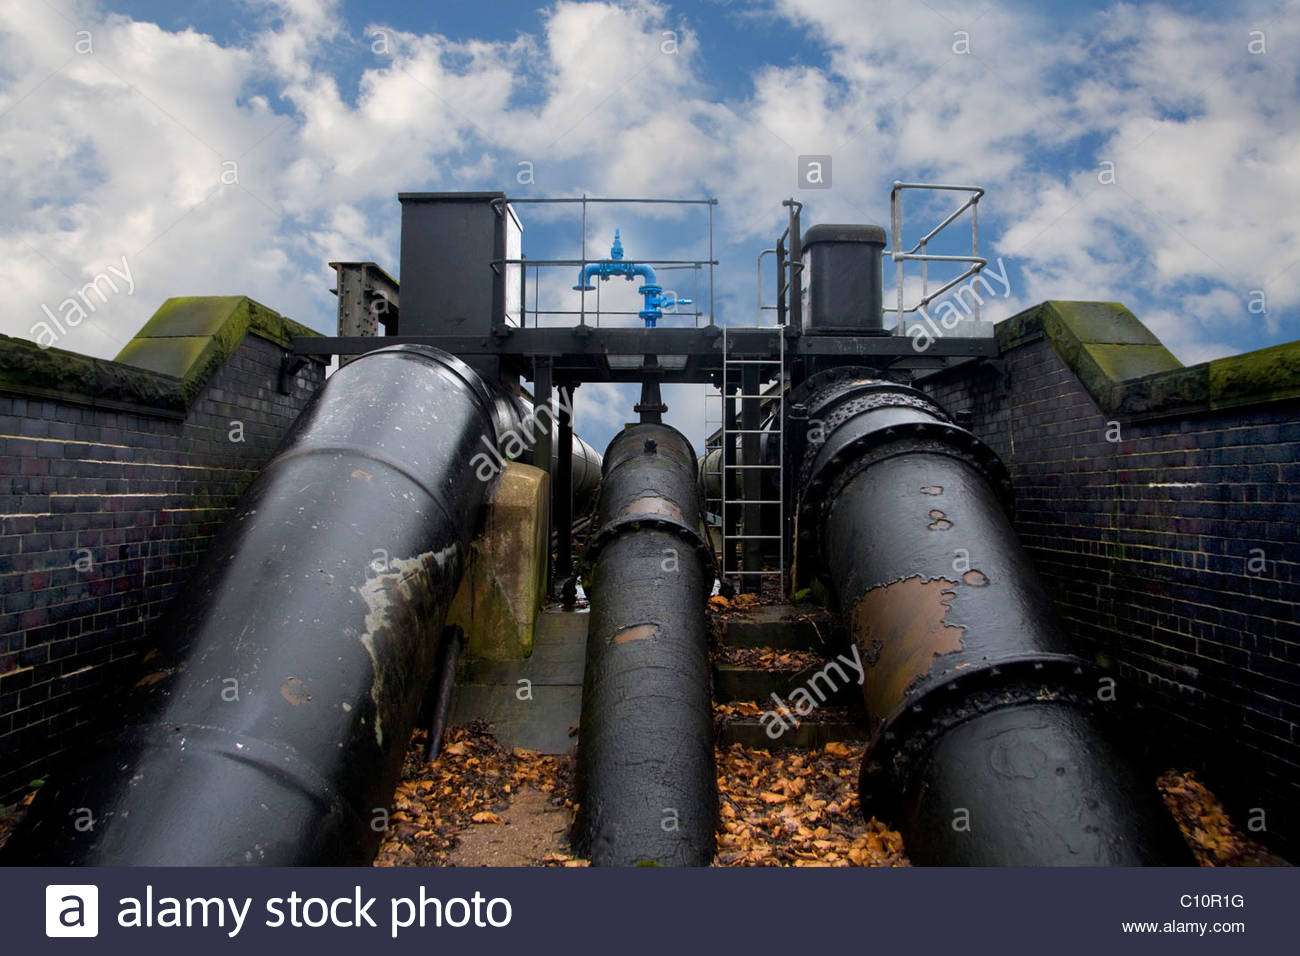 Big pipes and blue tap on a cloudy sky - Stock Image